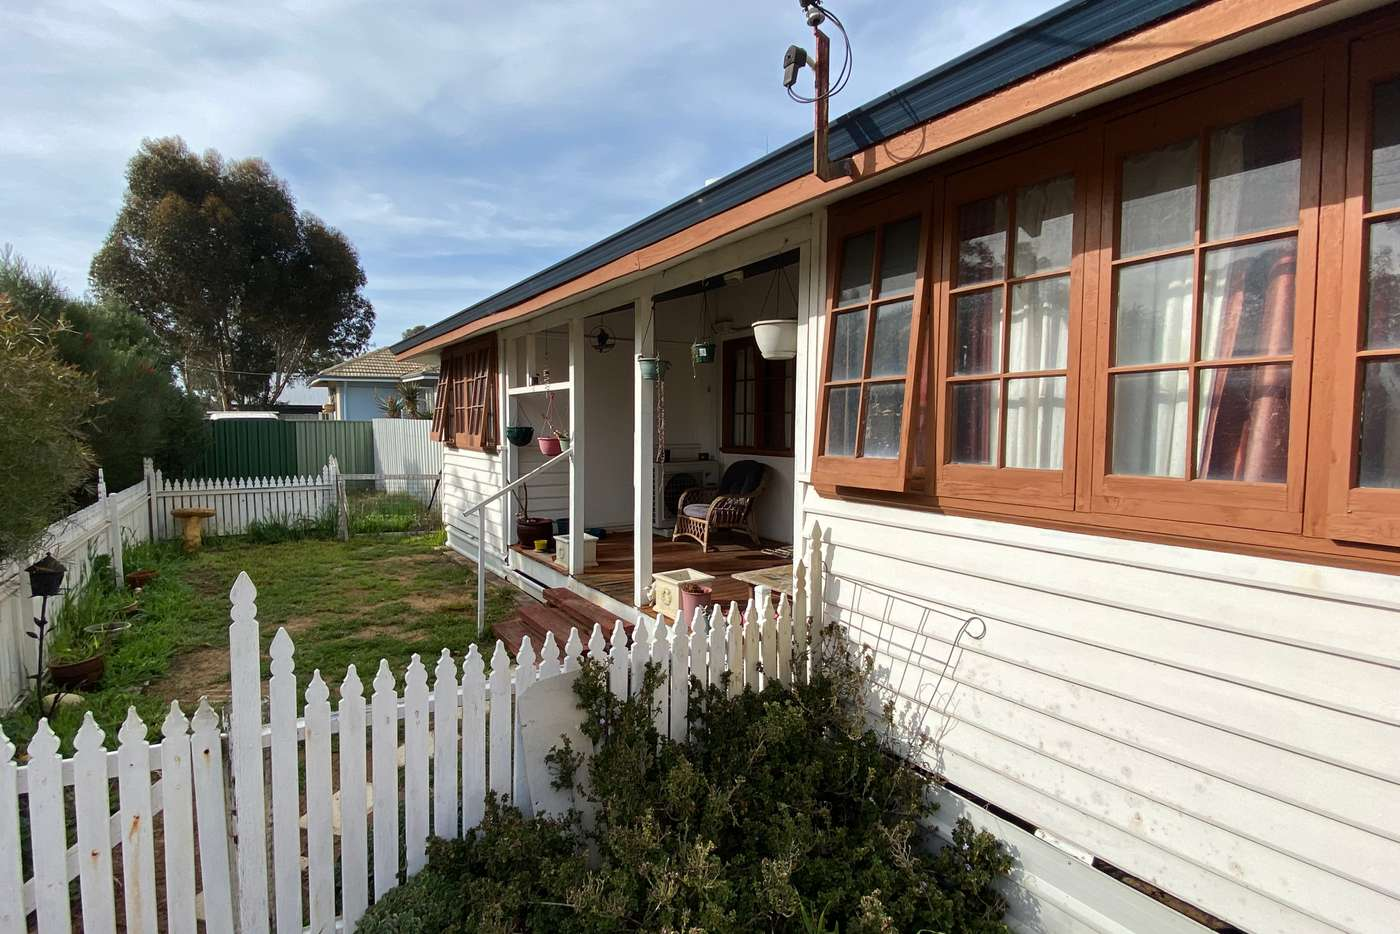 Main view of Homely house listing, 69 Lukin Street, Beverley WA 6304